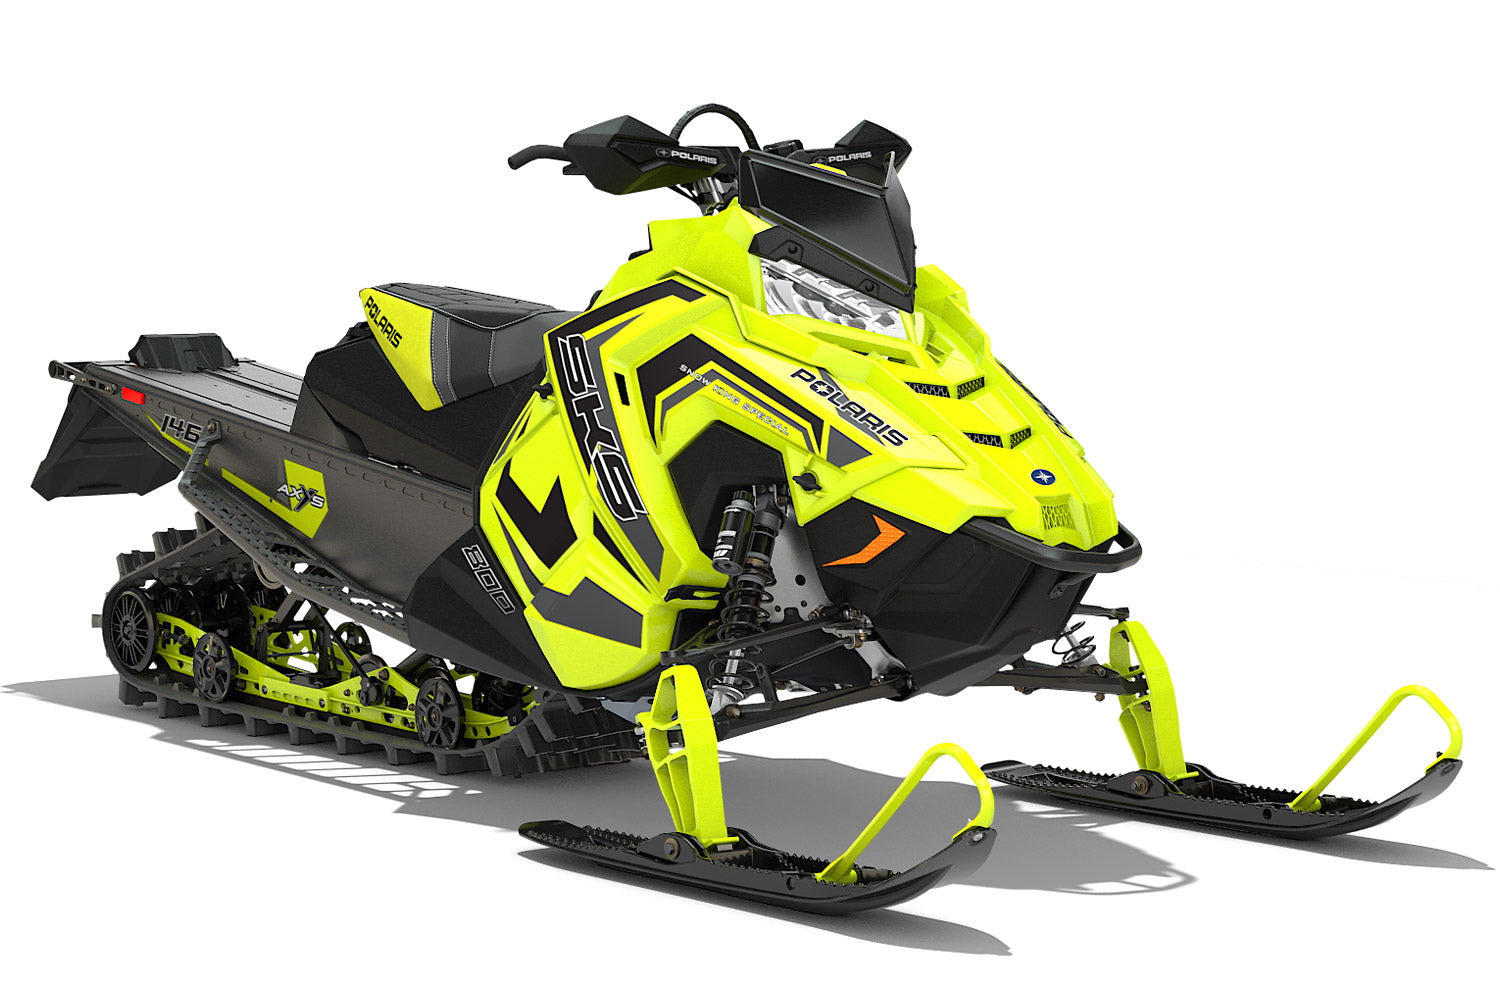 wiring diagram ski doo 2002 380 legend snowmobile   49